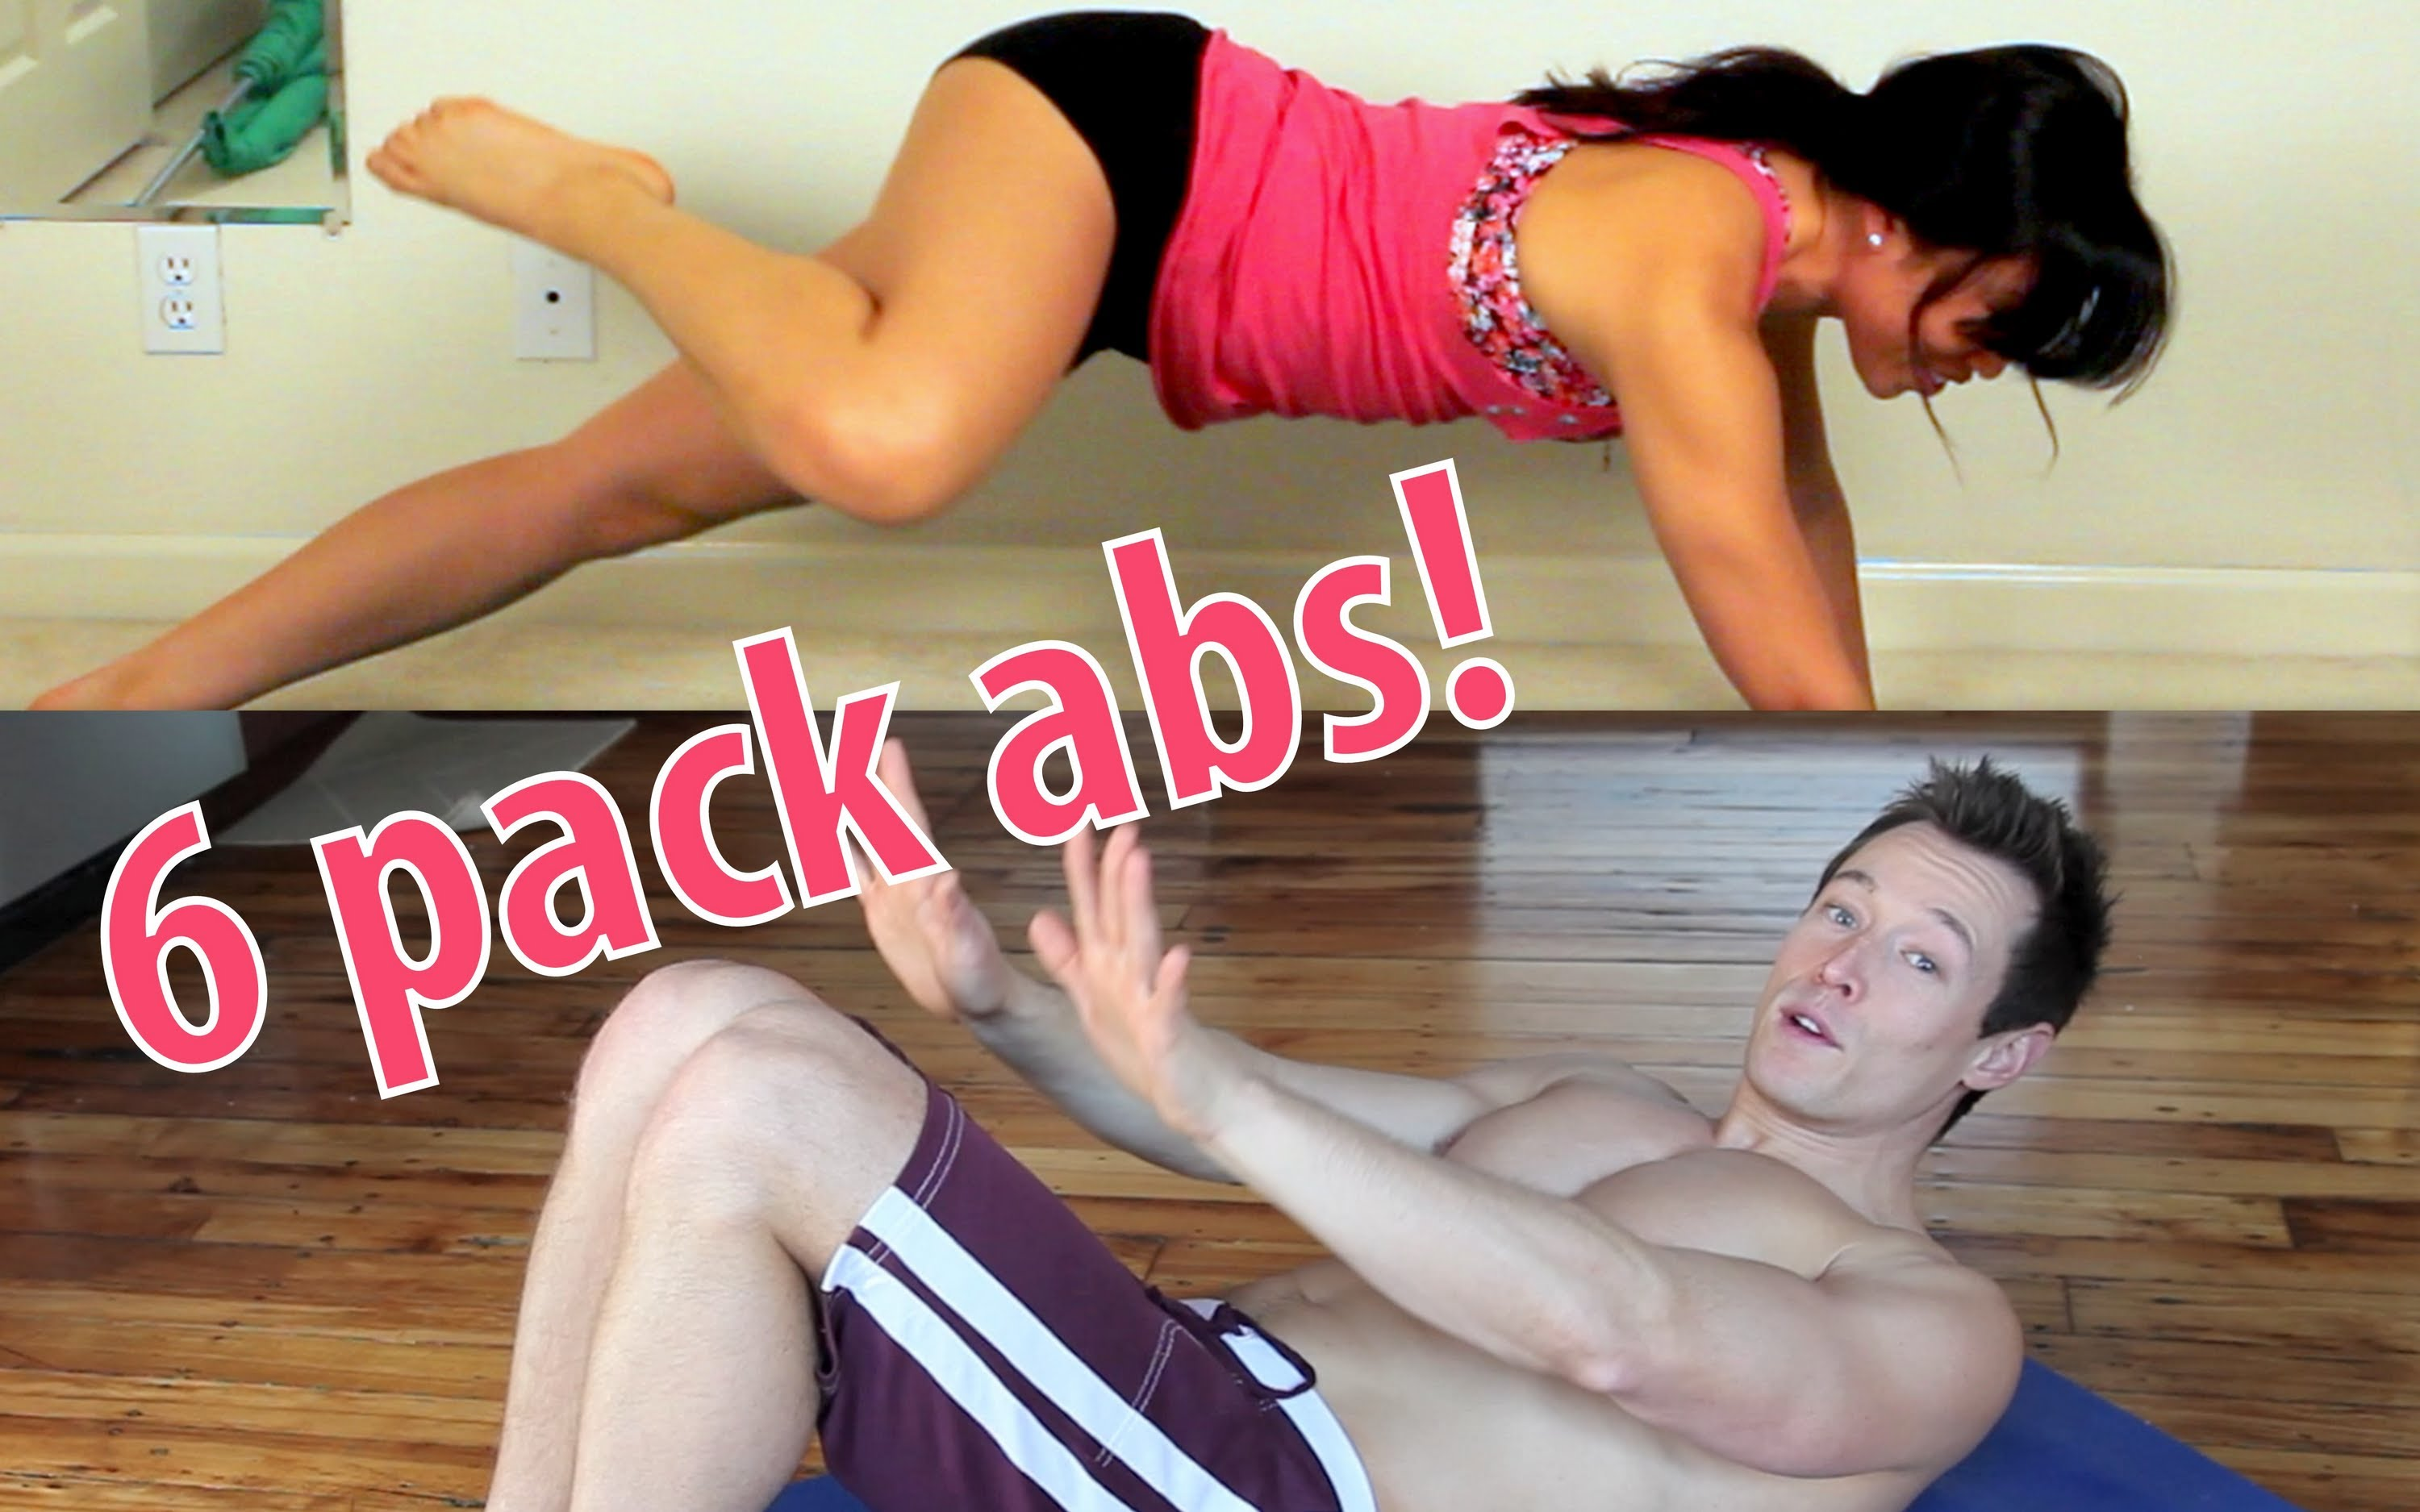 6 Pack Abs in 6 Moves! With Davey Wavey & Blogilates